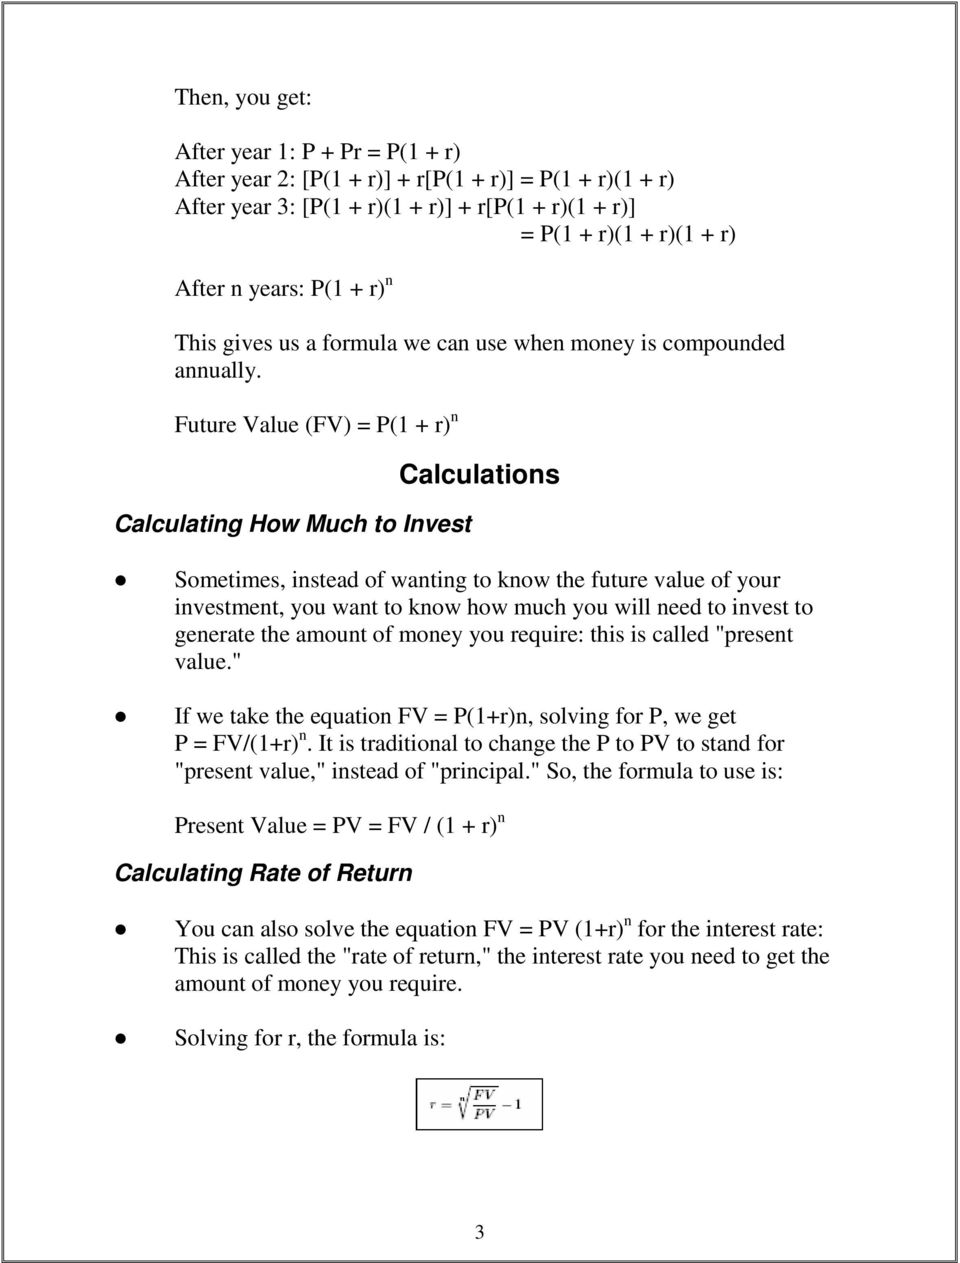 Future Value (FV) = P(1 + r) n Calculating How Much to Invest Calculations Sometimes, instead of wanting to know the future value of your investment, you want to know how much you will need to invest